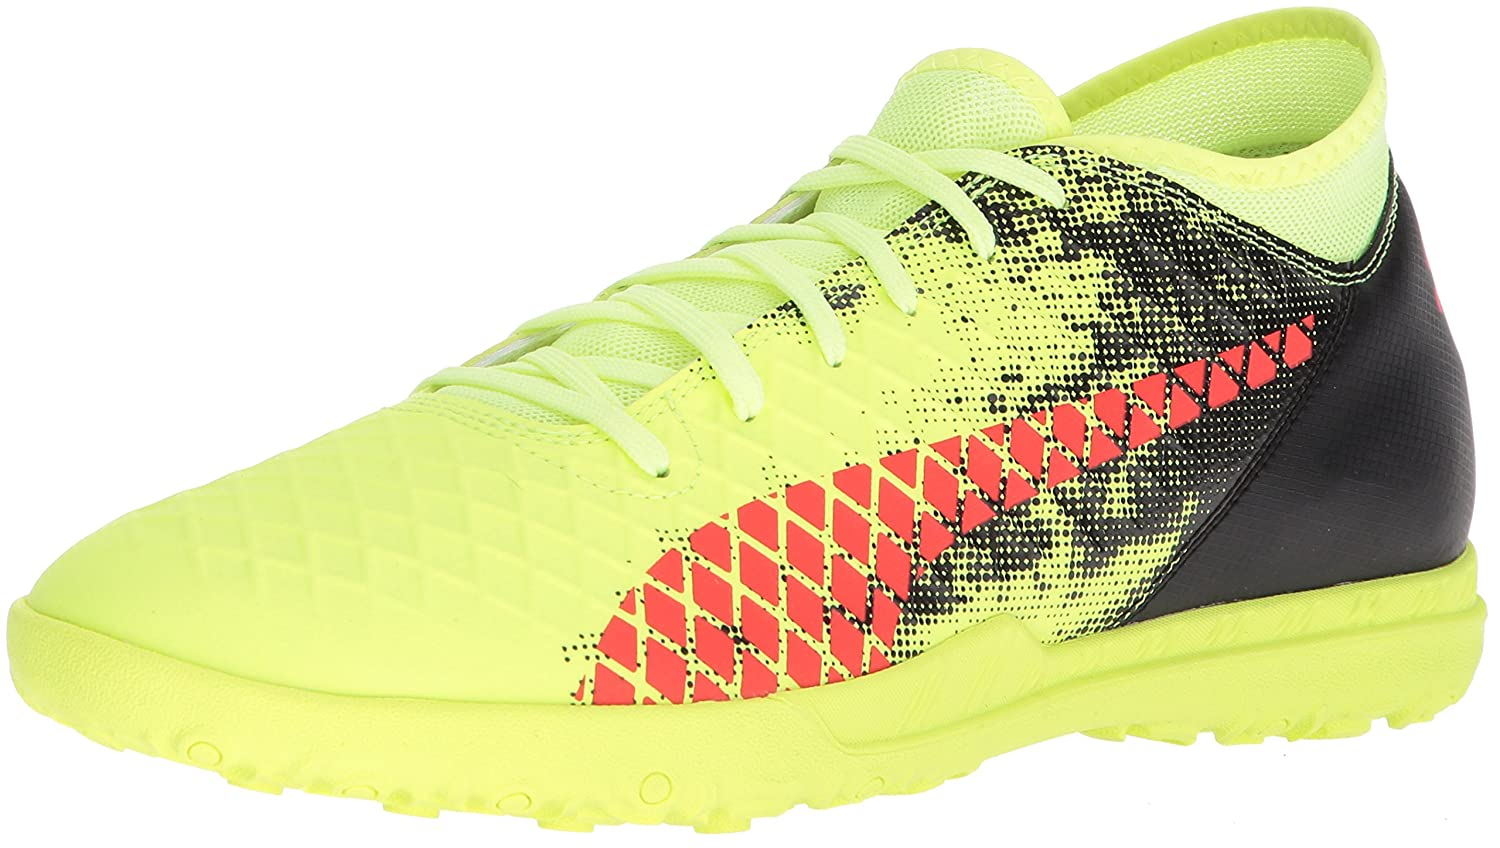 PUMA メンズ FUTURE 18.4 TT B071X4CCQX 8 D(M) US|Fizzy Yellow-red Blast-puma Black Fizzy Yellow-red Blast-puma Black 8 D(M) US